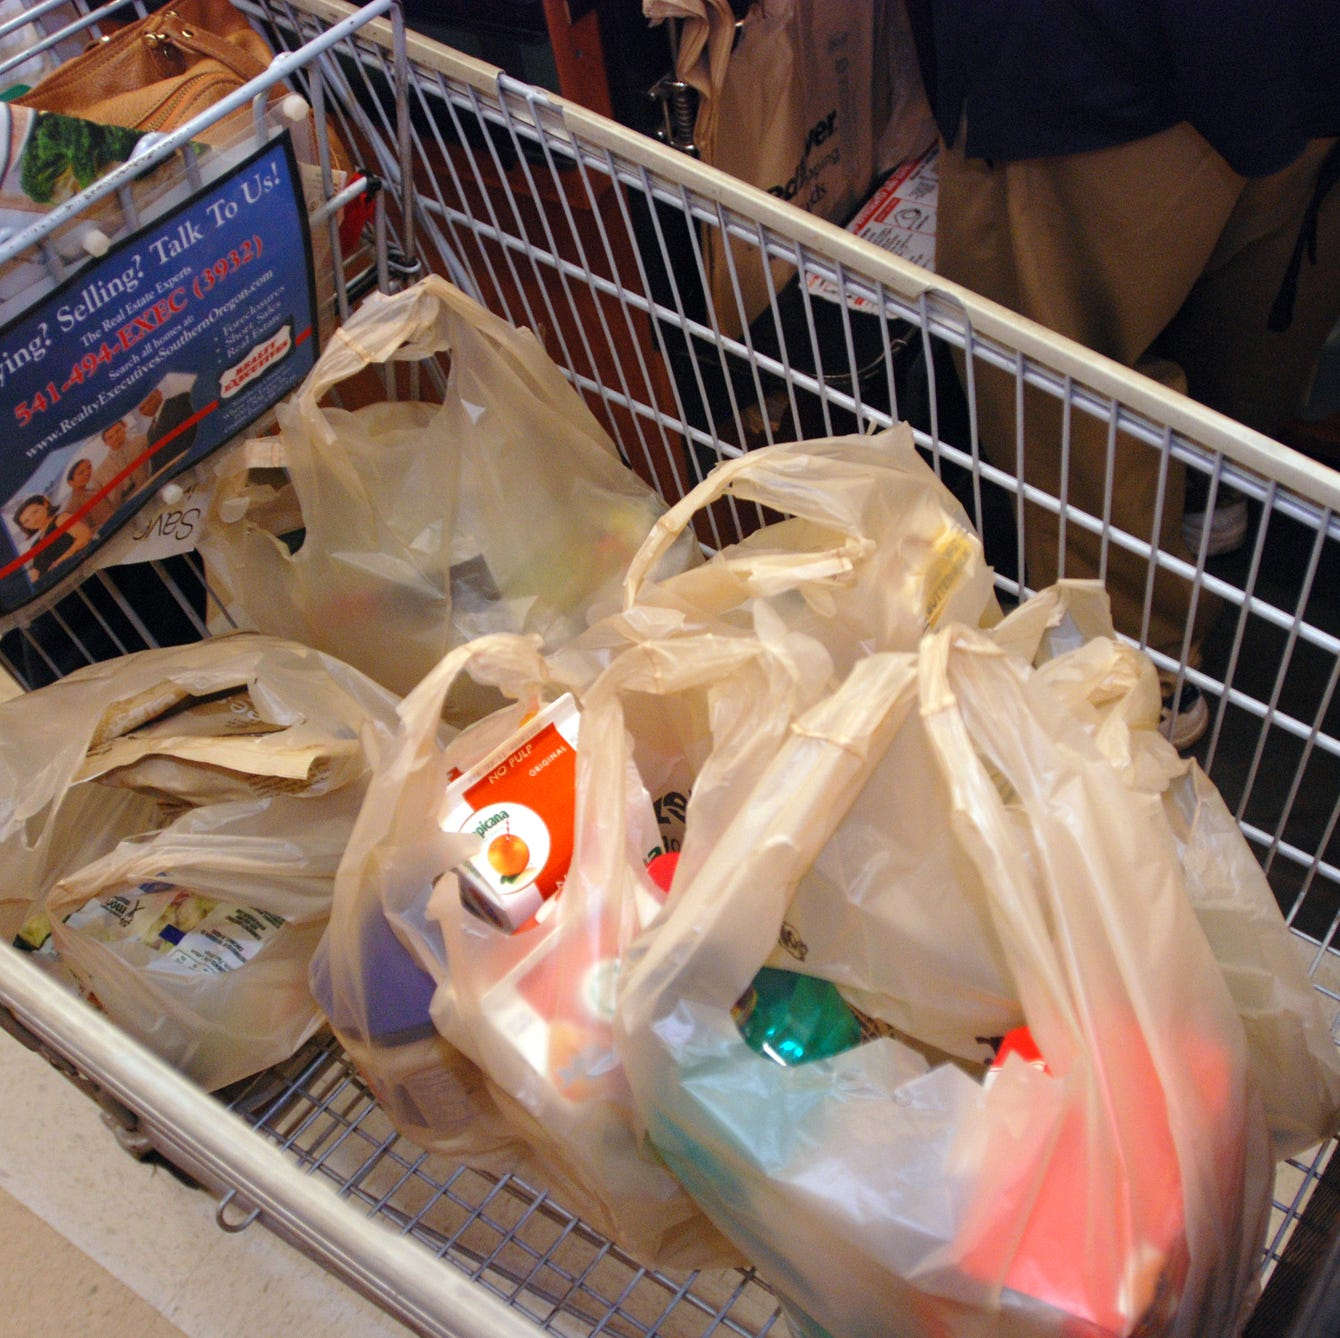 Oregon House approves ban on plastic bags at grocery stores, large retailers